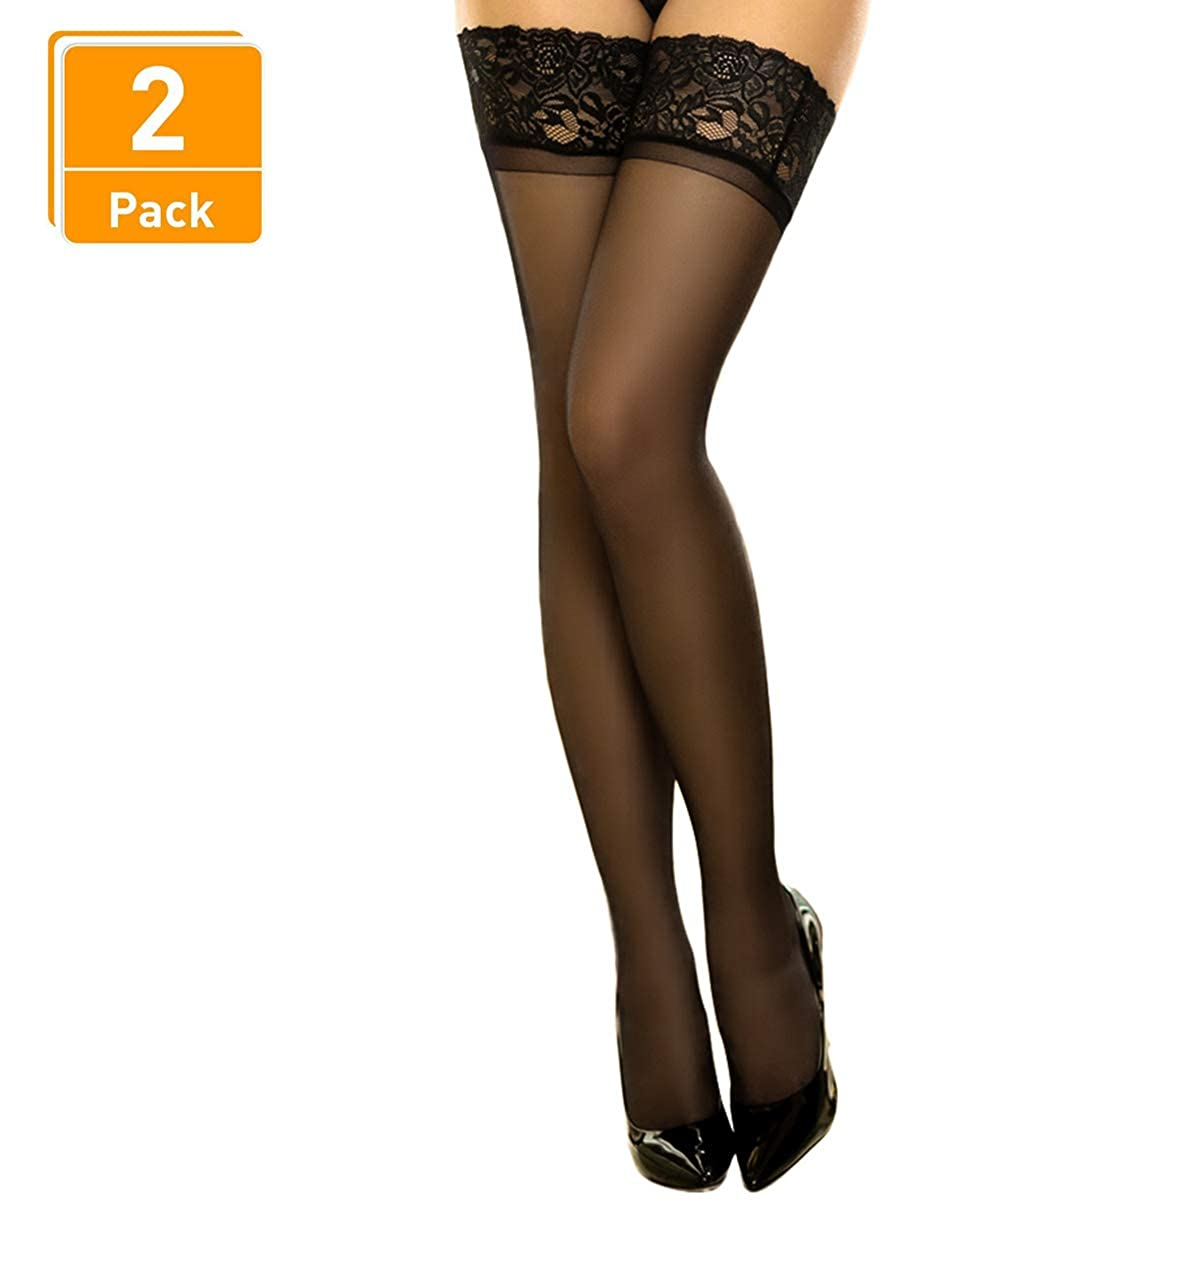 911e4c58aa Latest Update: DancMolly Thigh High Stocking, After several times of  customer feedback survey to improve the new products. Inspiration creates a  woman\'s ...